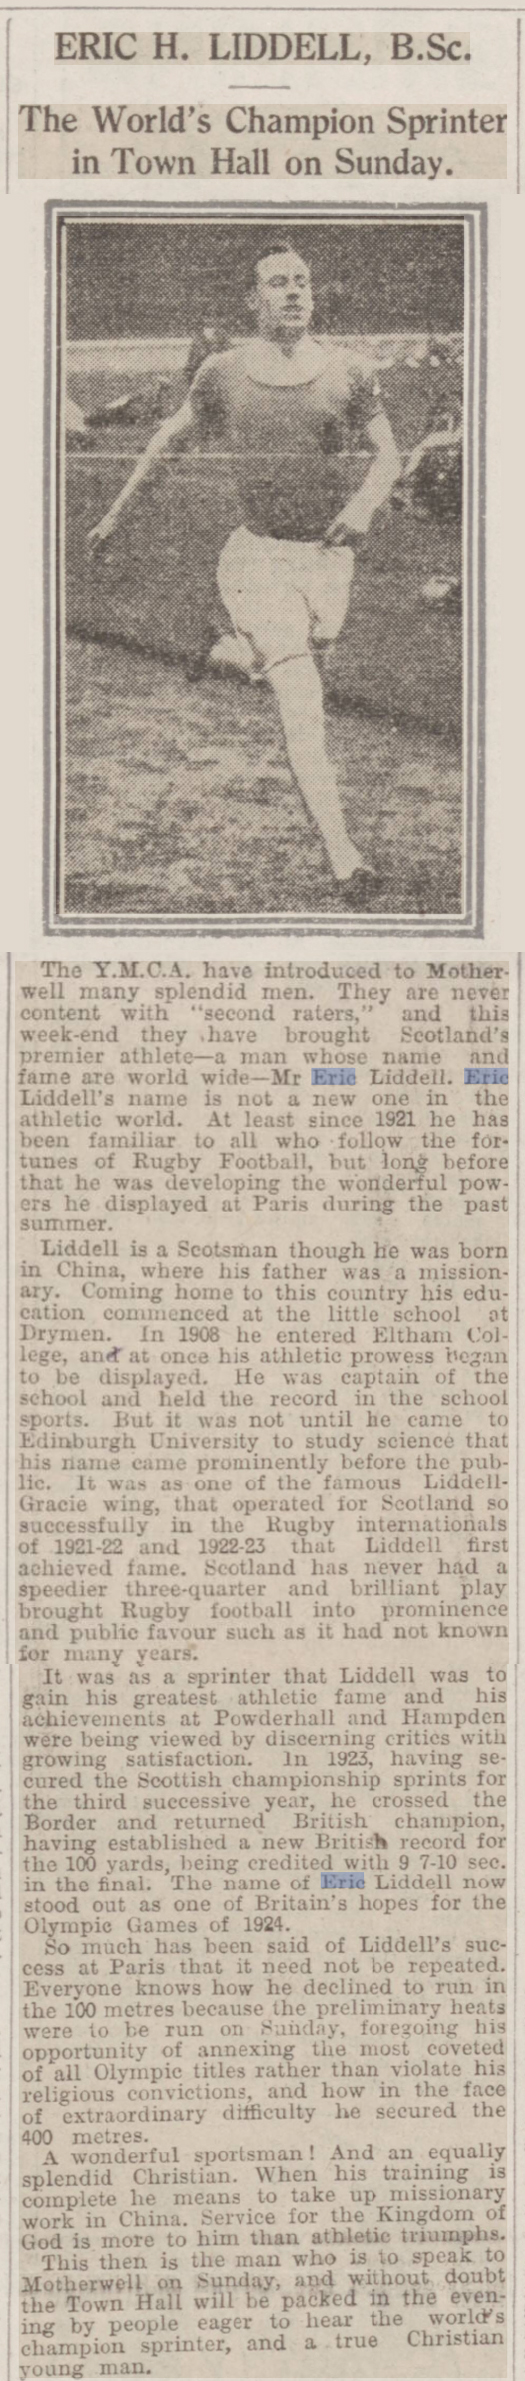 newspaper story about the triumph of Olympic champion, Eric Liddell